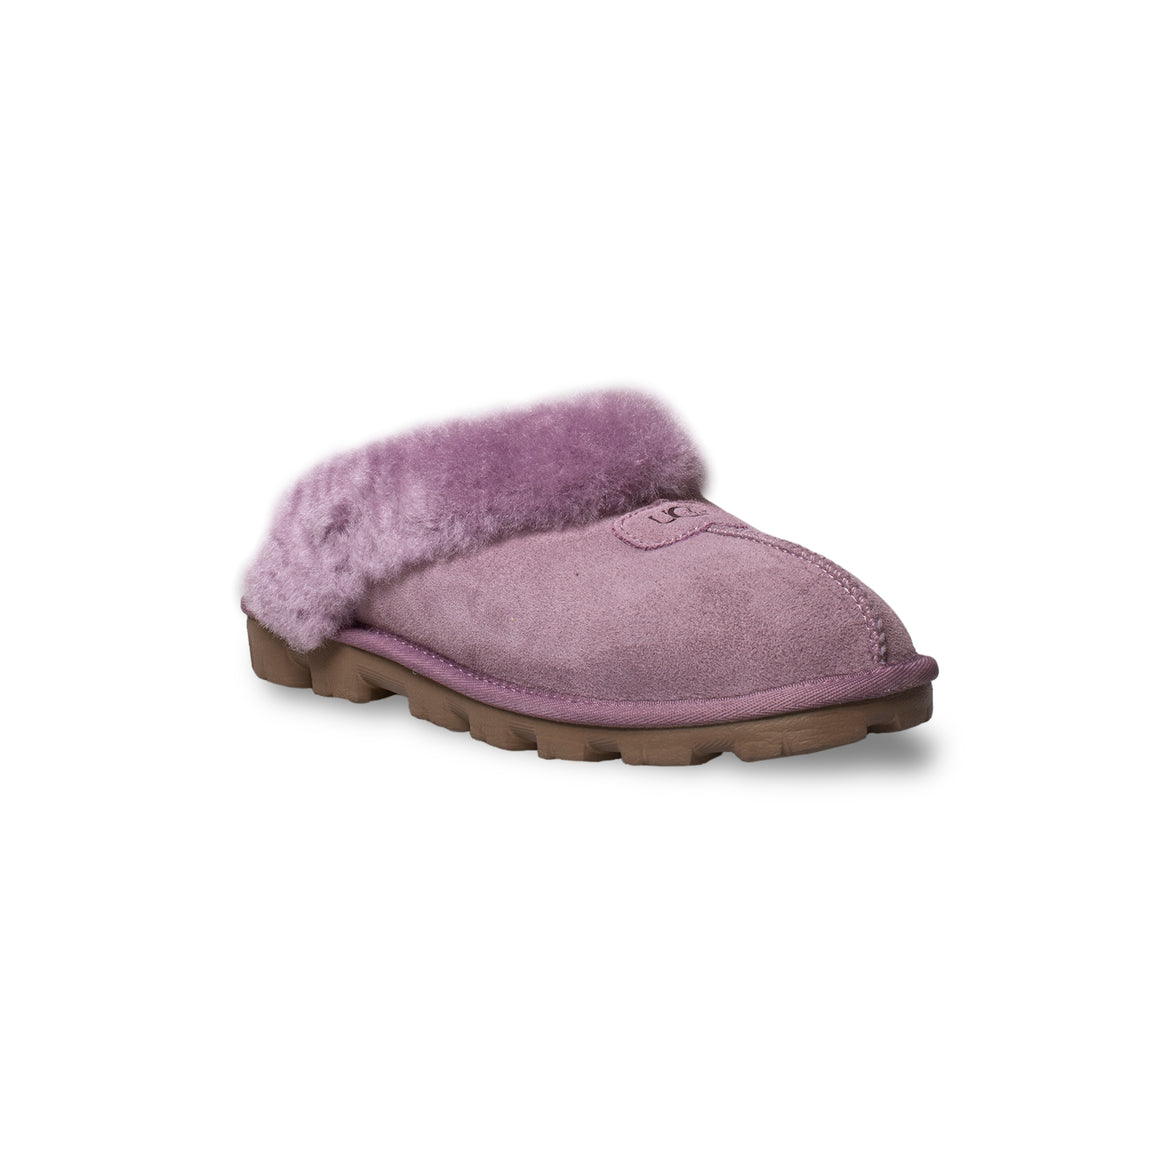 UGG Coquette Shadow Slippers - Women's